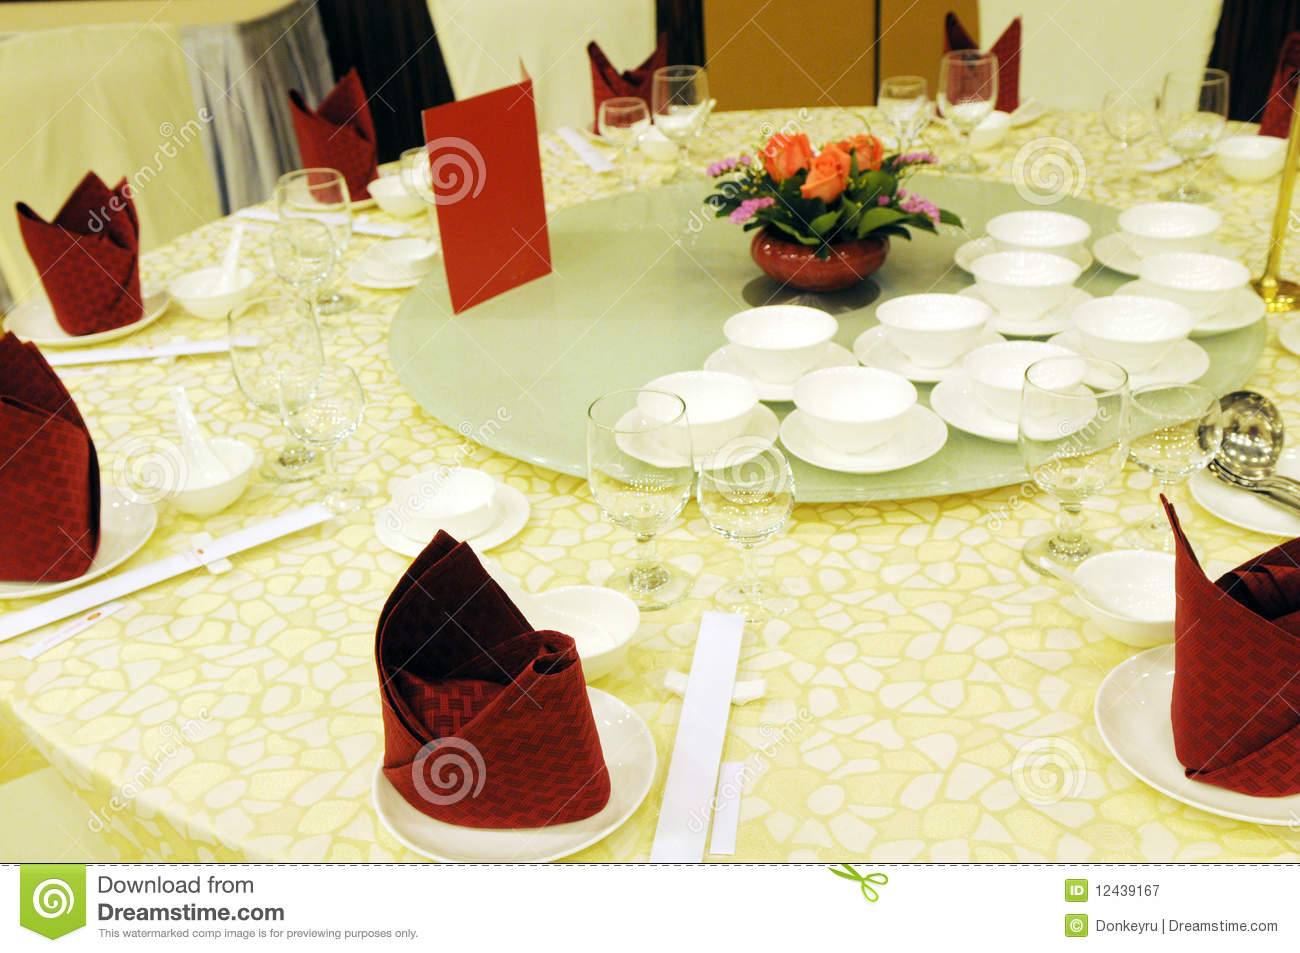 Chinese table setting - Chinese Table Setting Chinese Table Setting Chinese Table Setting Royalty Free Stock Photography Download